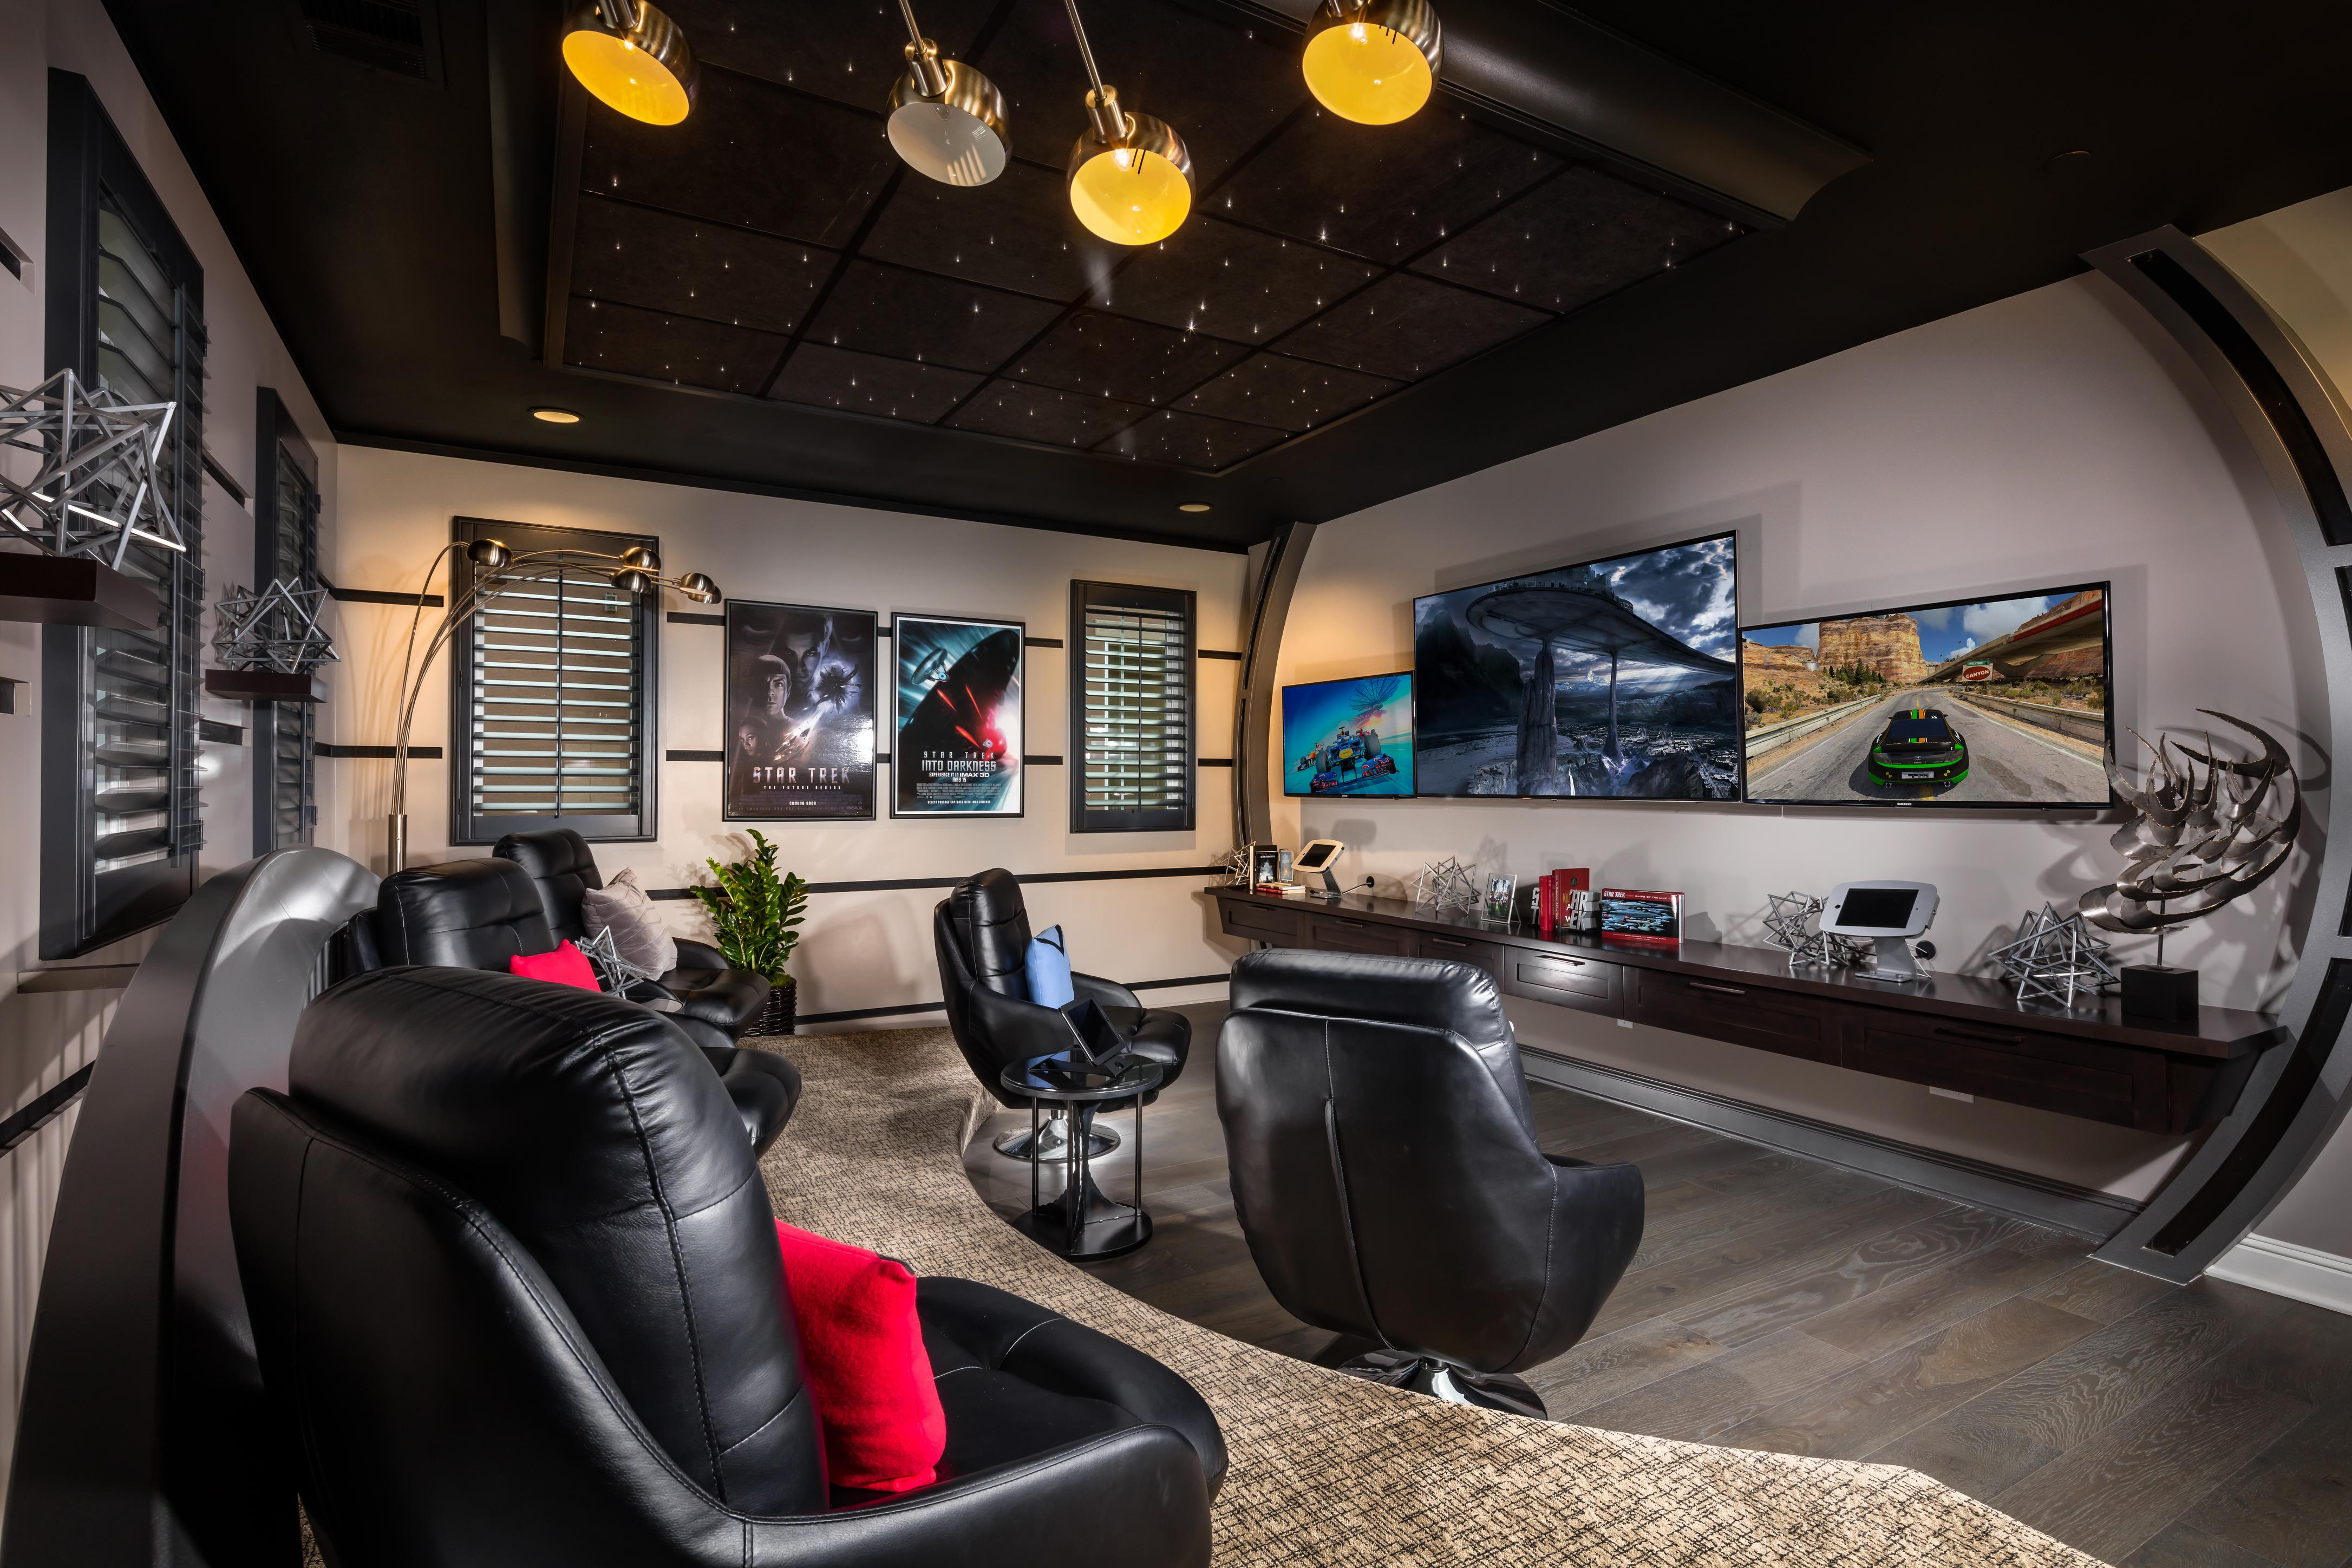 A home theater with three tv's and gaming station.